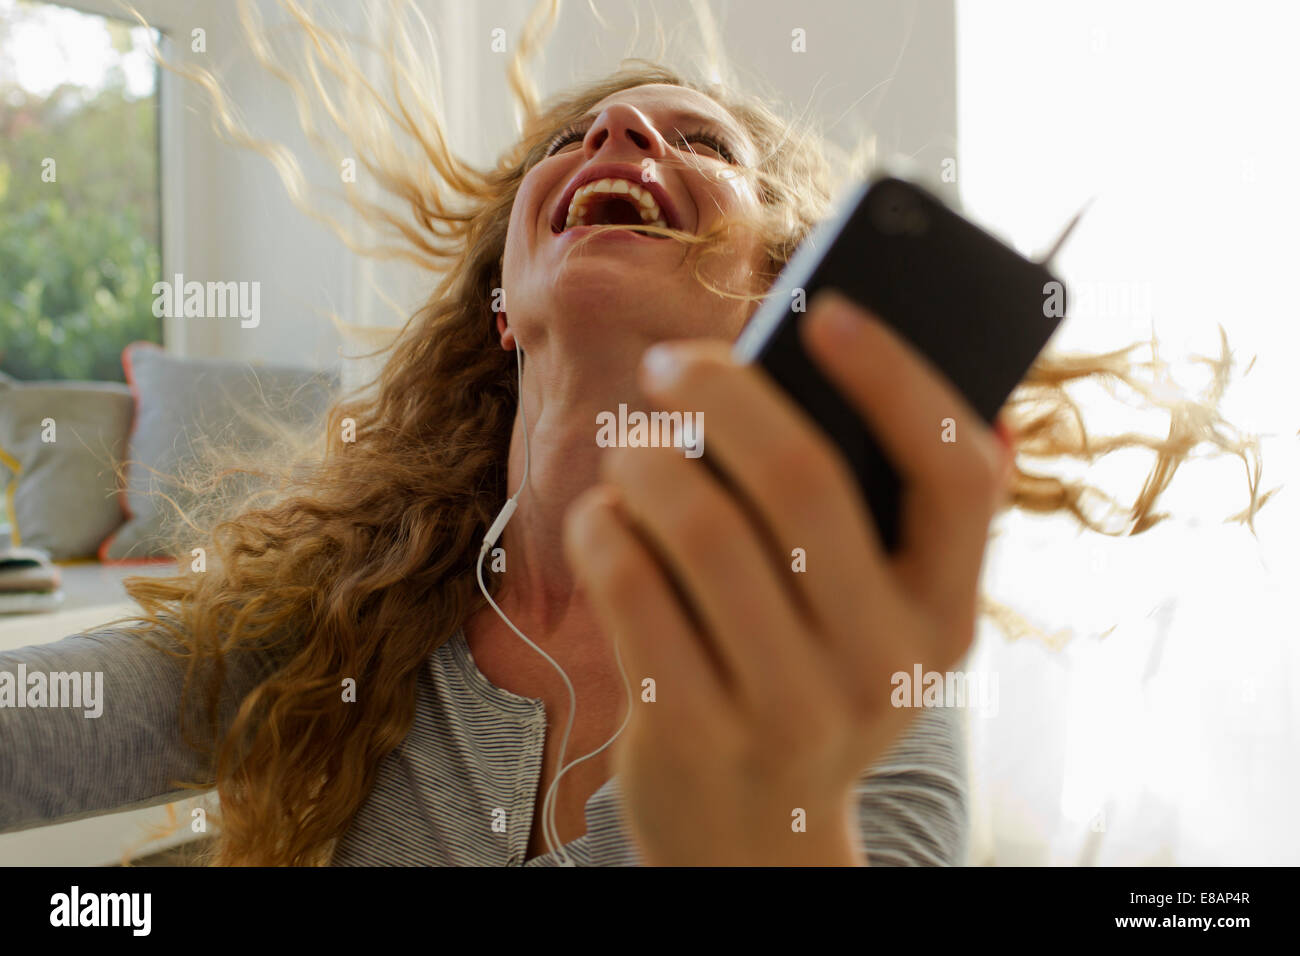 Woman dancing to music on smartphone - Stock Image